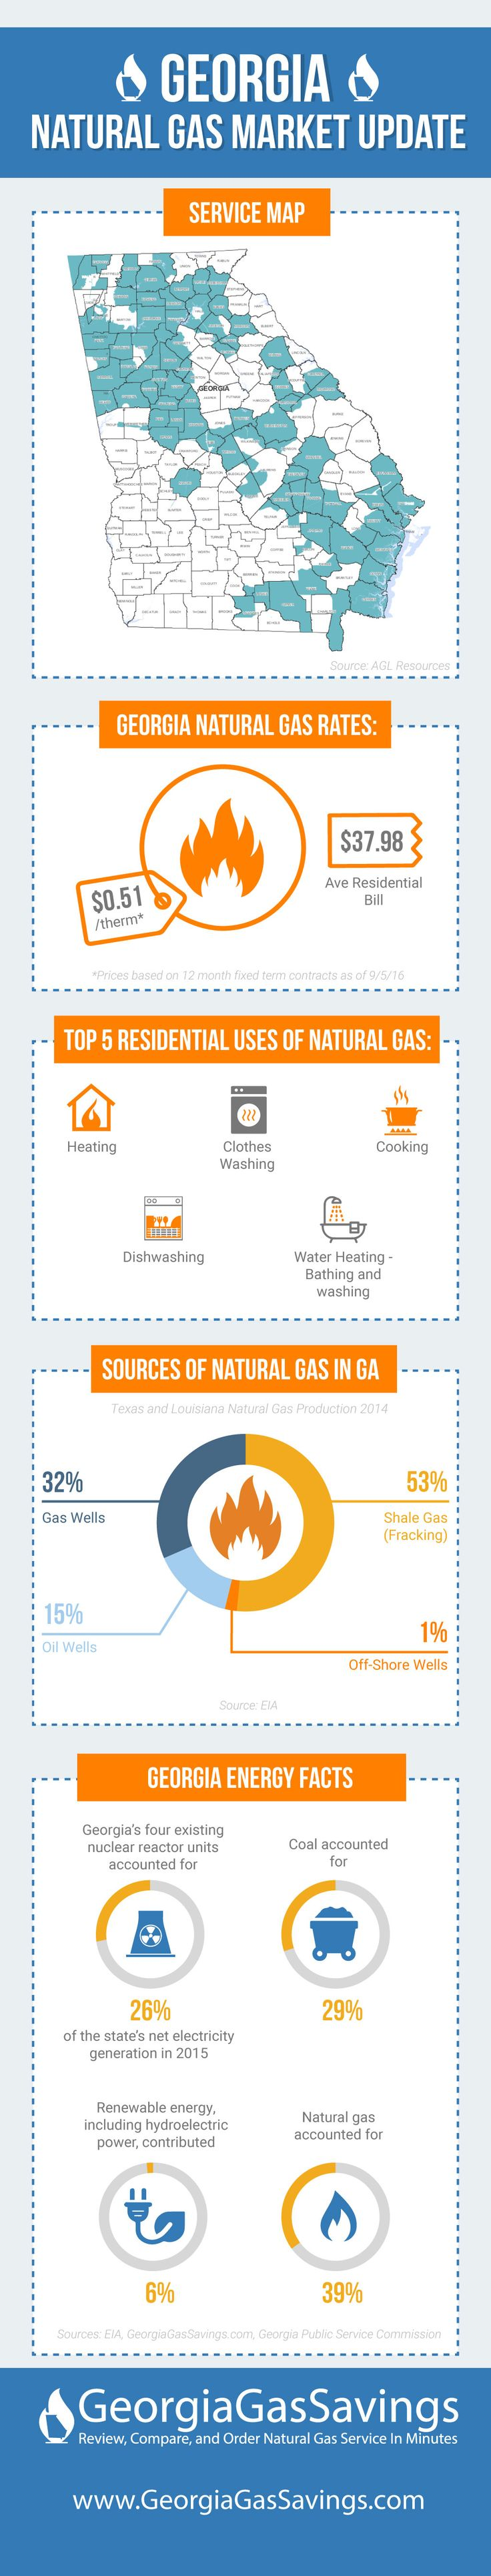 What is the average price that Georgians pay for natural gas service? What is the average natural gas bill for Georgians? Where does Georgia's natural gas supply come from? What are the sources of energy used in my home? Check out the following infographic to learn more about Georgia natural gas rates.